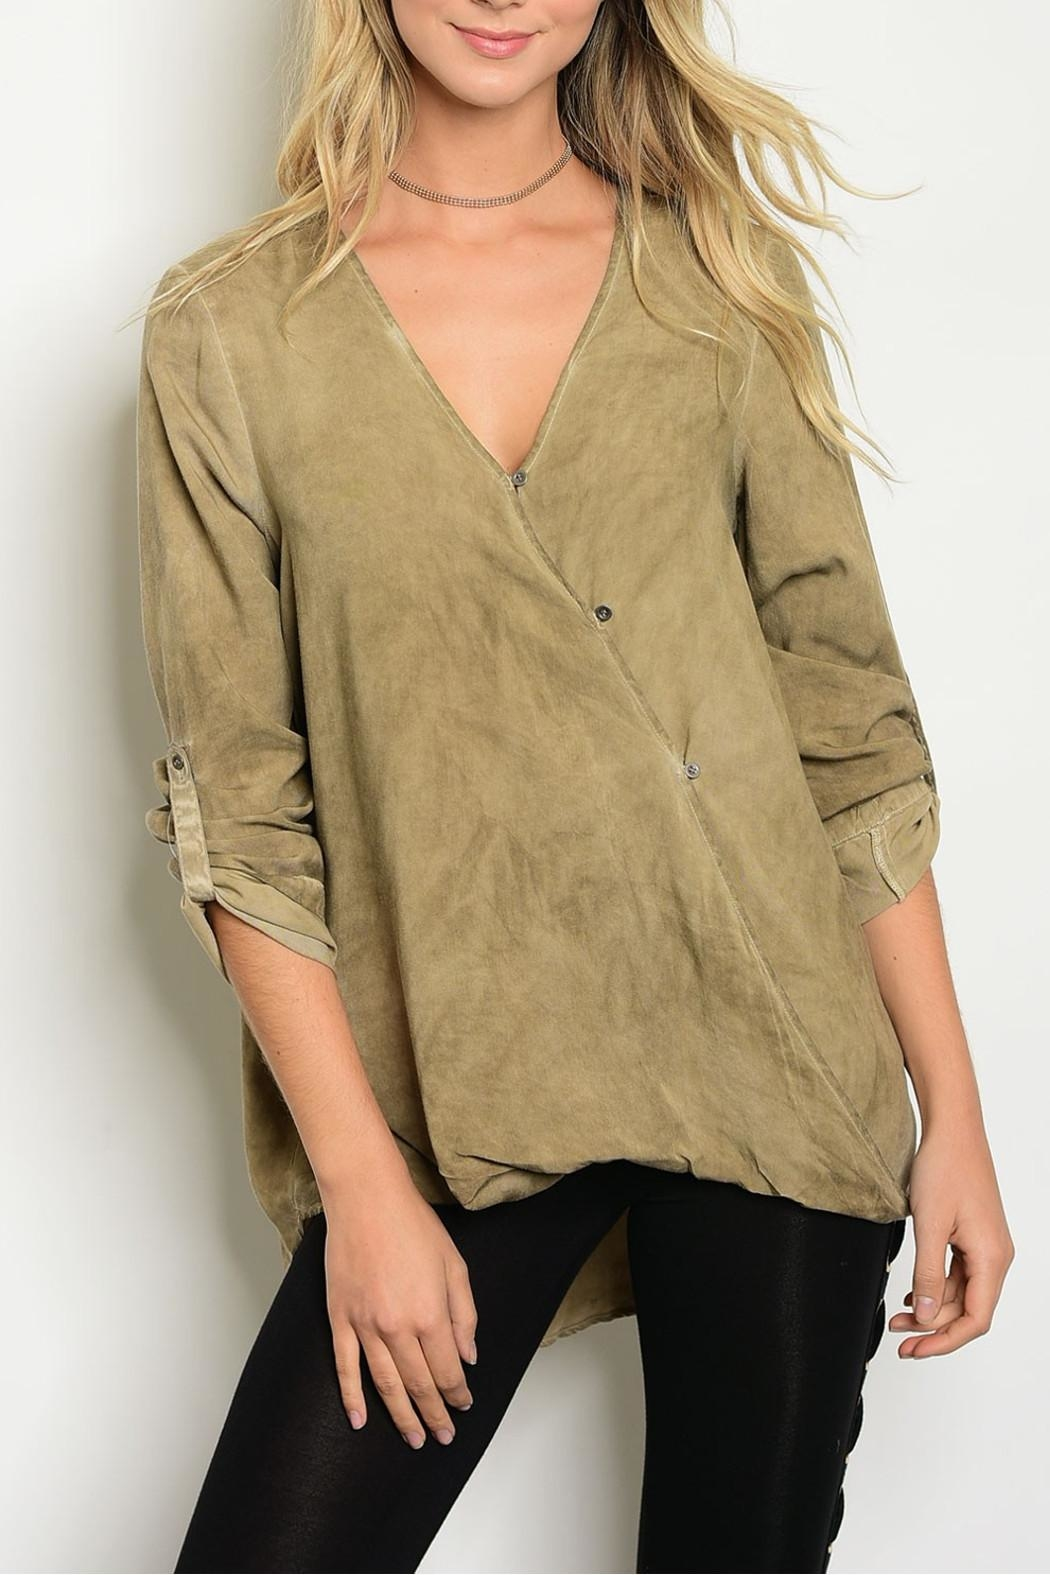 LoveRiche Acid Taupe Blouse - Front Cropped Image